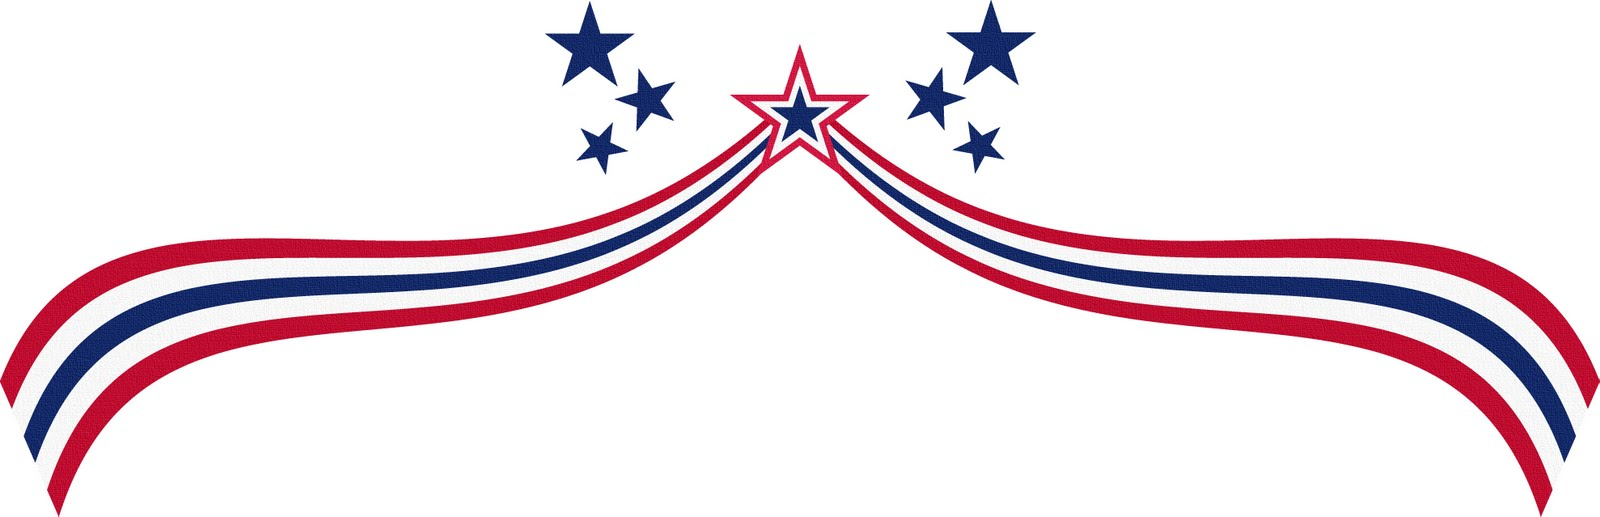 4th Of July Borders Clipart.